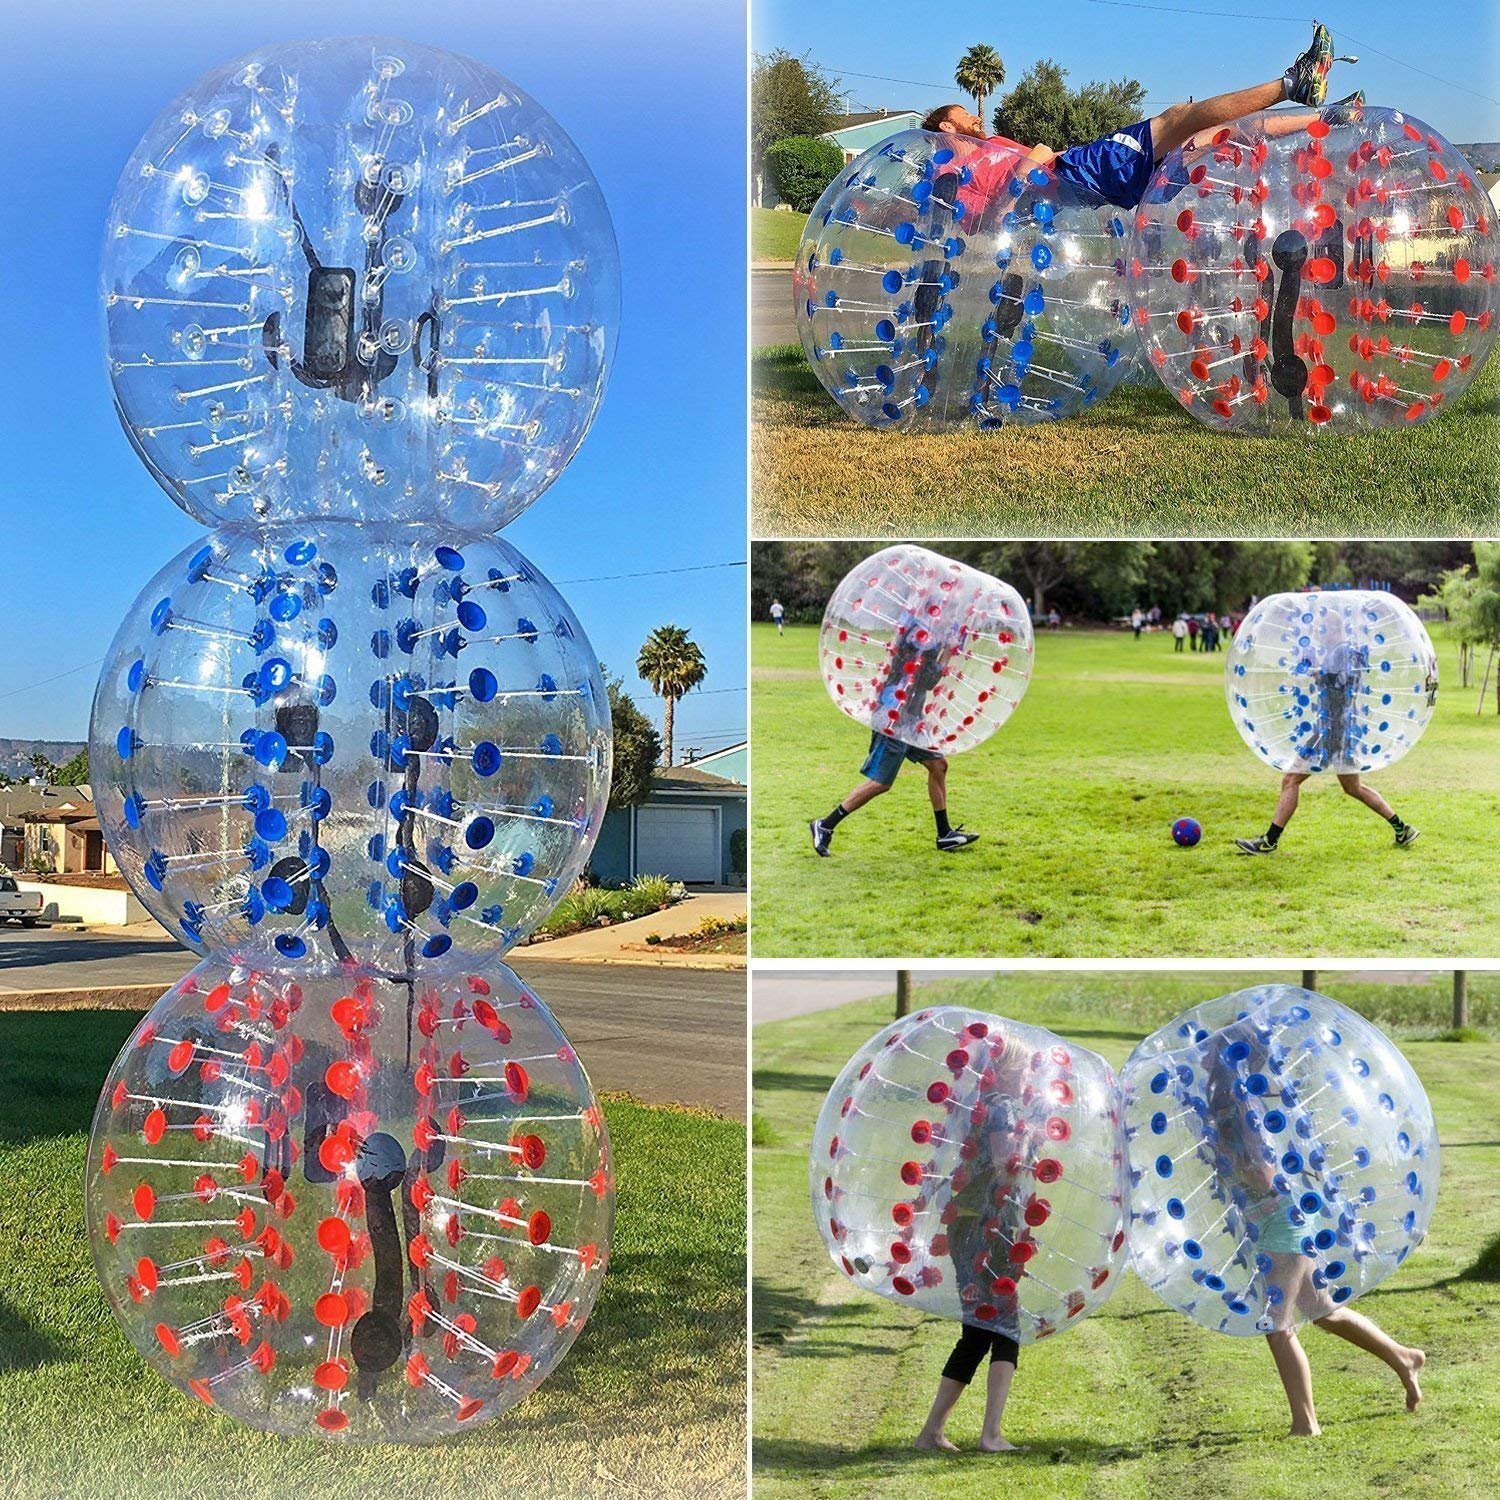 Jinschen Inflatable Bumper Bubble Soccer Ball Dia 5 ft(1.5m) Giant Human Hamster Ball for Adults and Teens